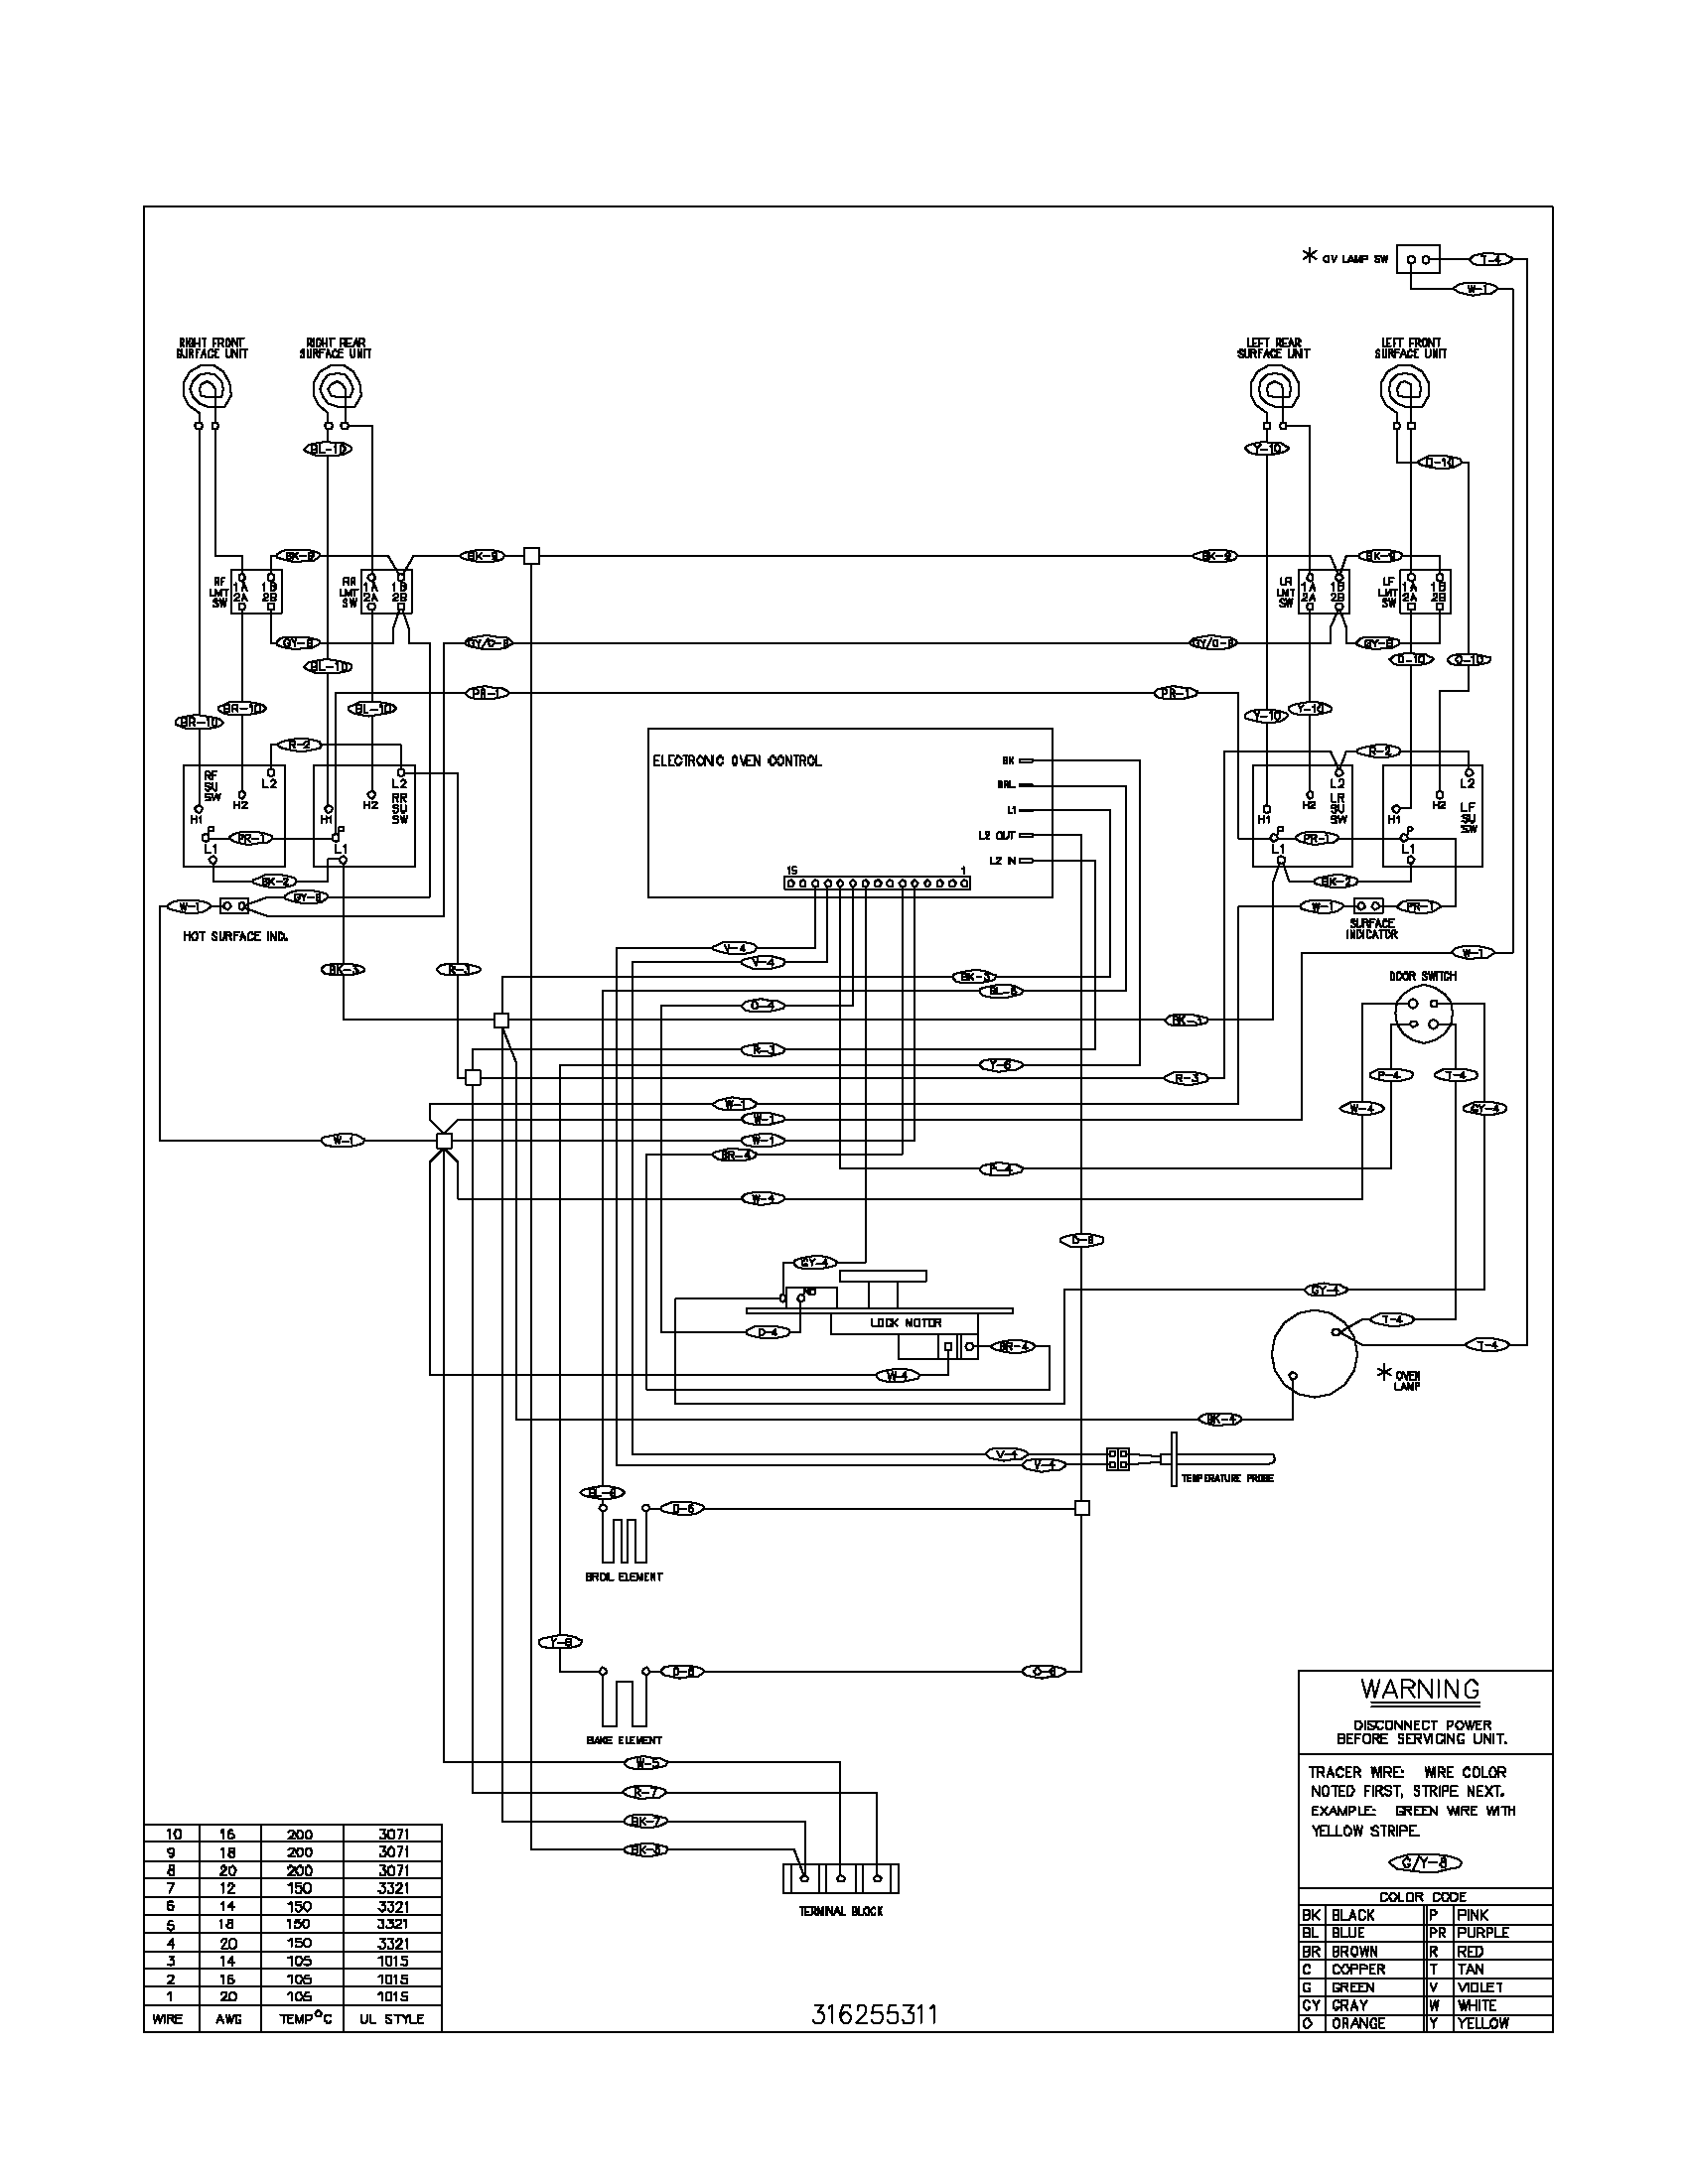 wiring diagram for frigidaire oven wiring diagram 2019 rh c78 bs drabner de